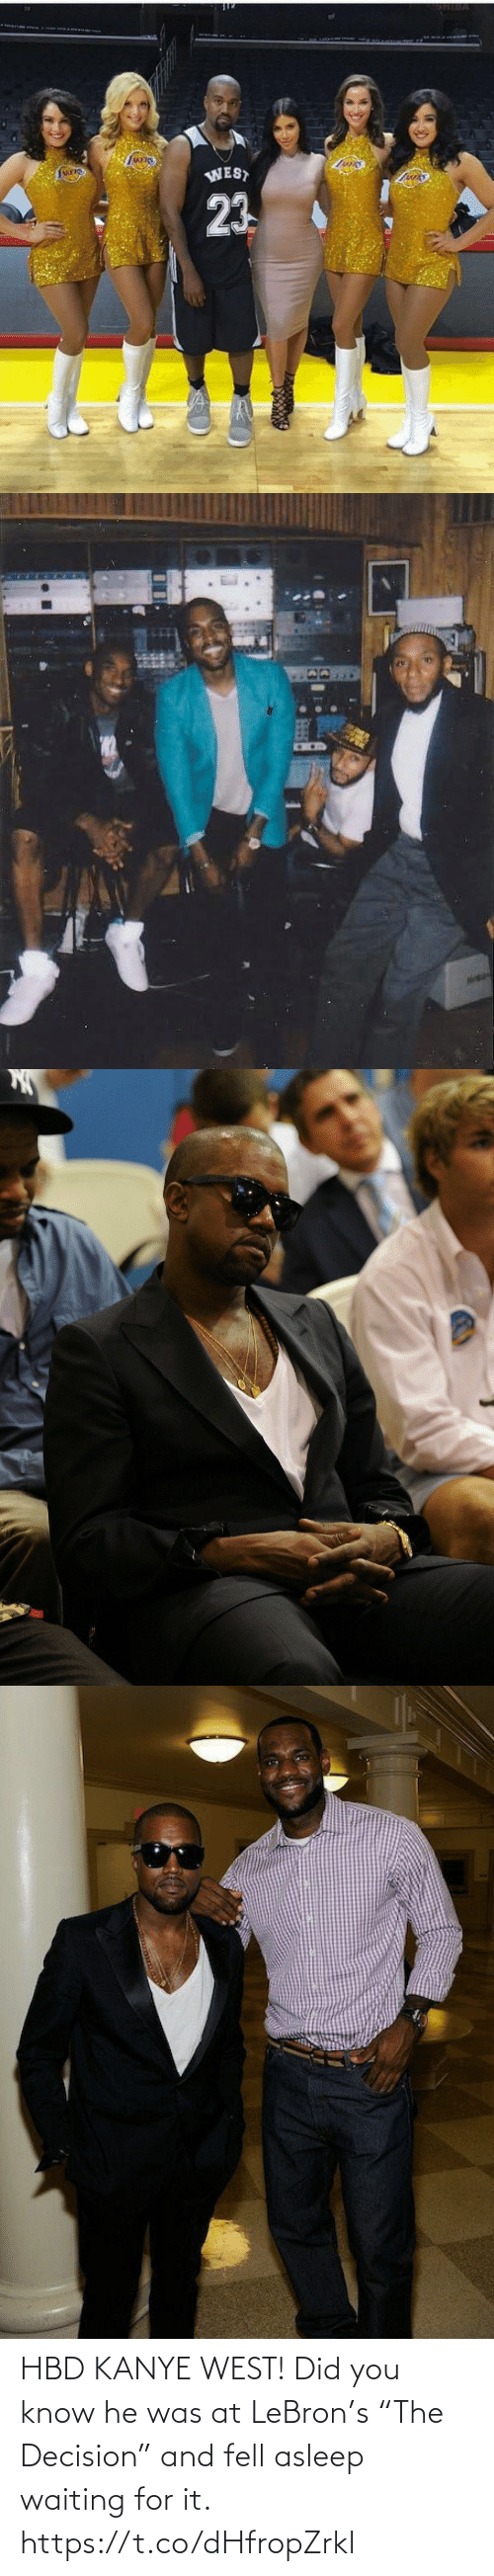 "Kanye, Memes, and Kanye West: HBD KANYE WEST! Did you know he was at LeBron's ""The Decision"" and fell asleep waiting for it. https://t.co/dHfropZrkl"